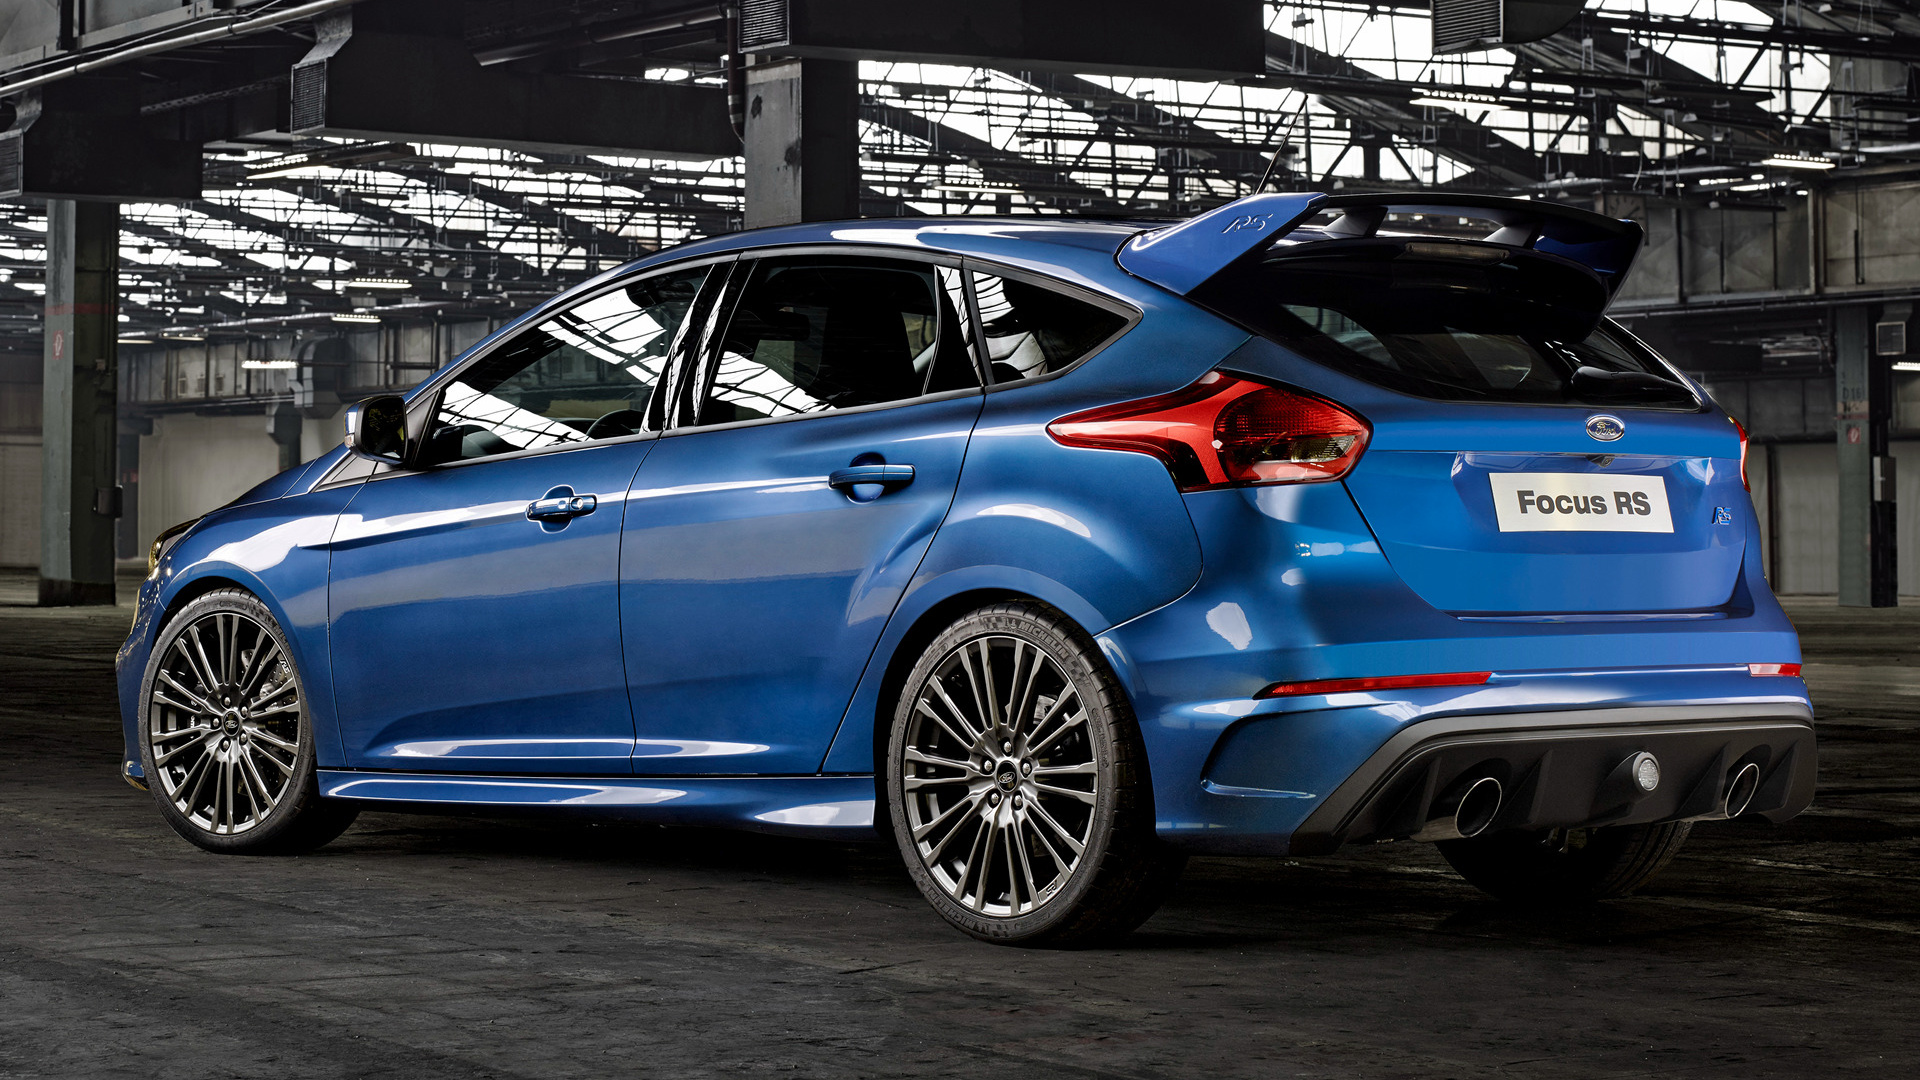 ford focus rs 2015 wallpapers and hd images car pixel. Black Bedroom Furniture Sets. Home Design Ideas